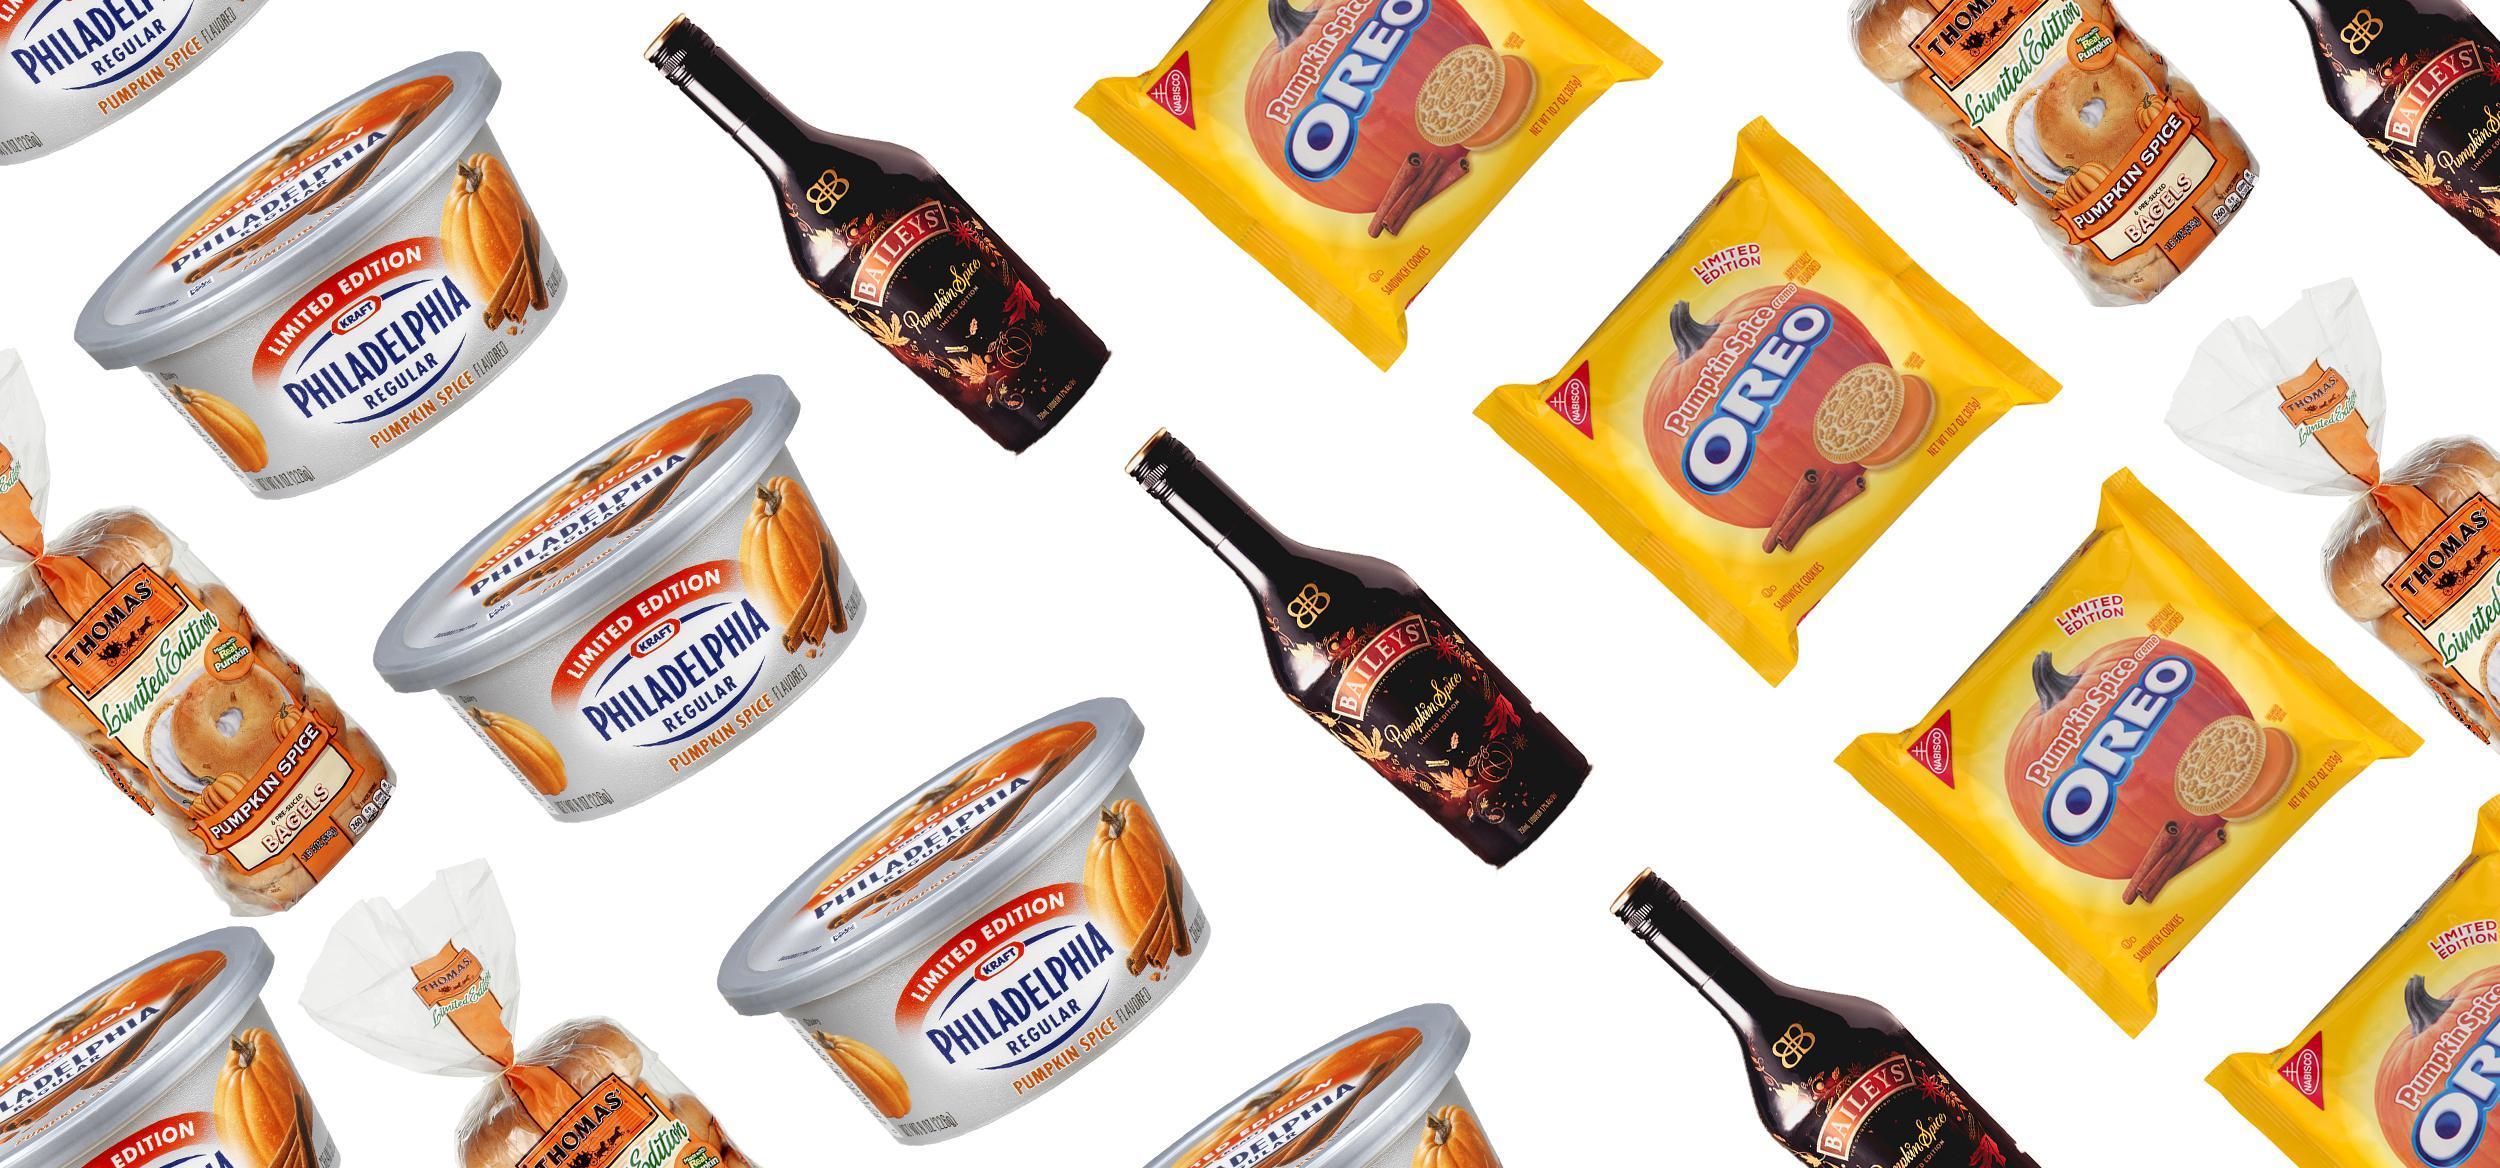 A Definitive Guide to (Almost) Every Pumpkin Spice Product in Existence